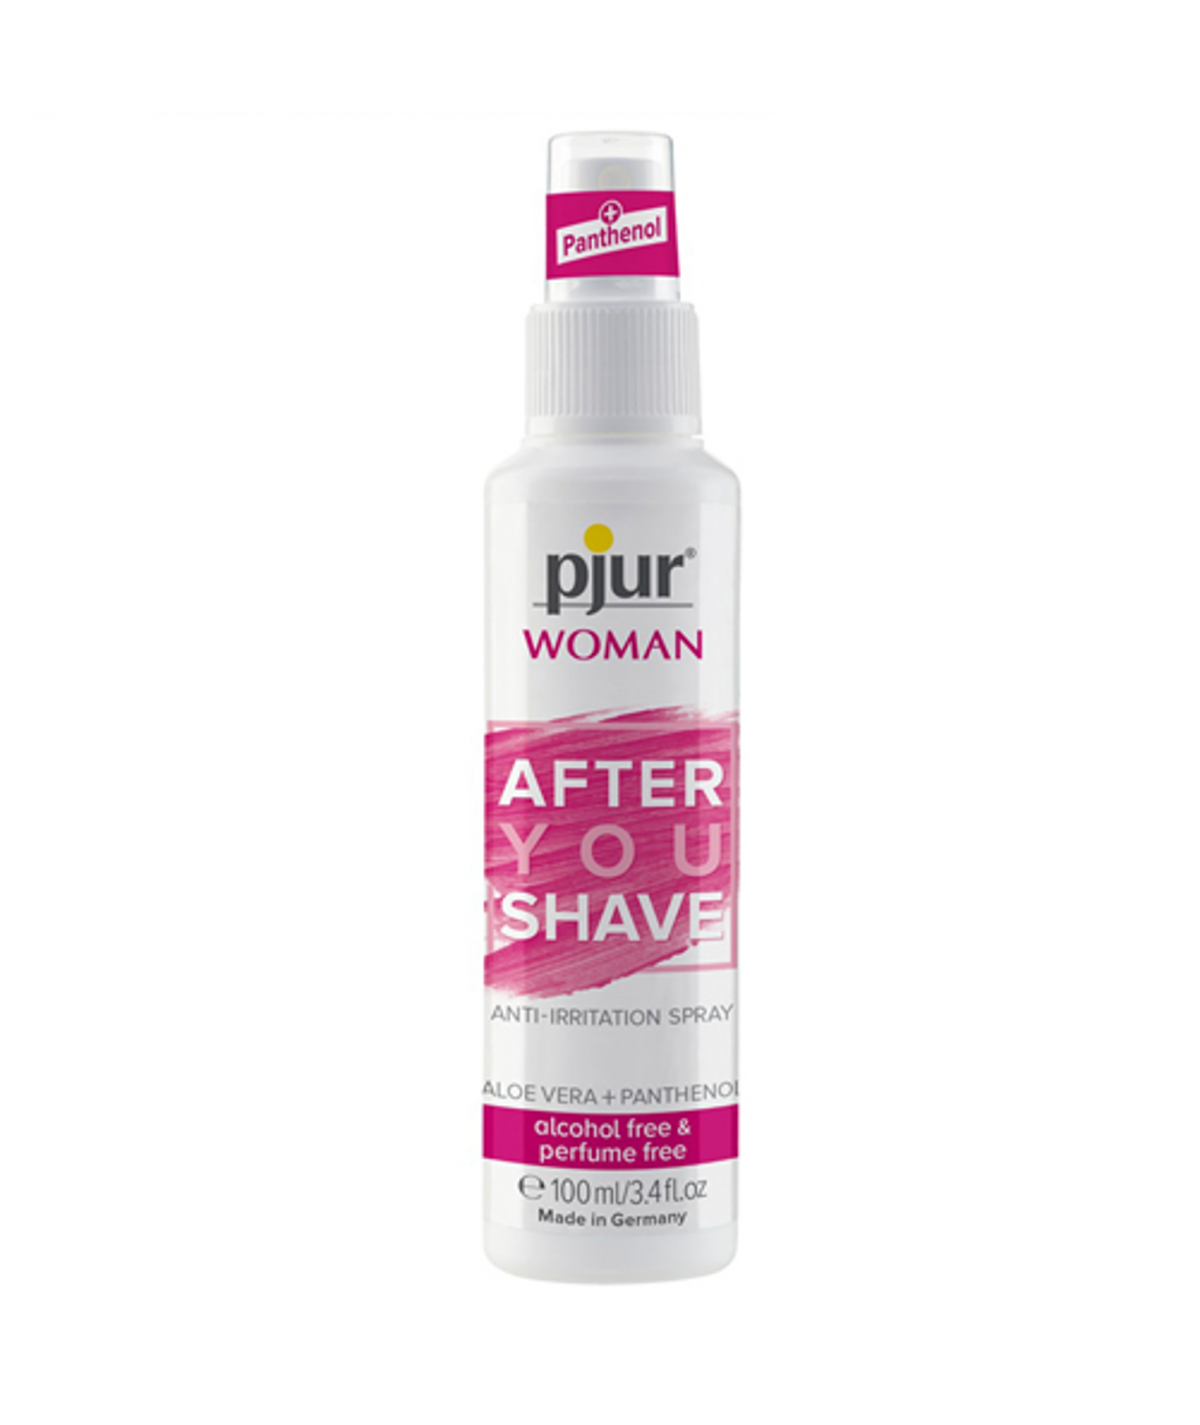 Pjur Woman After You Shave...